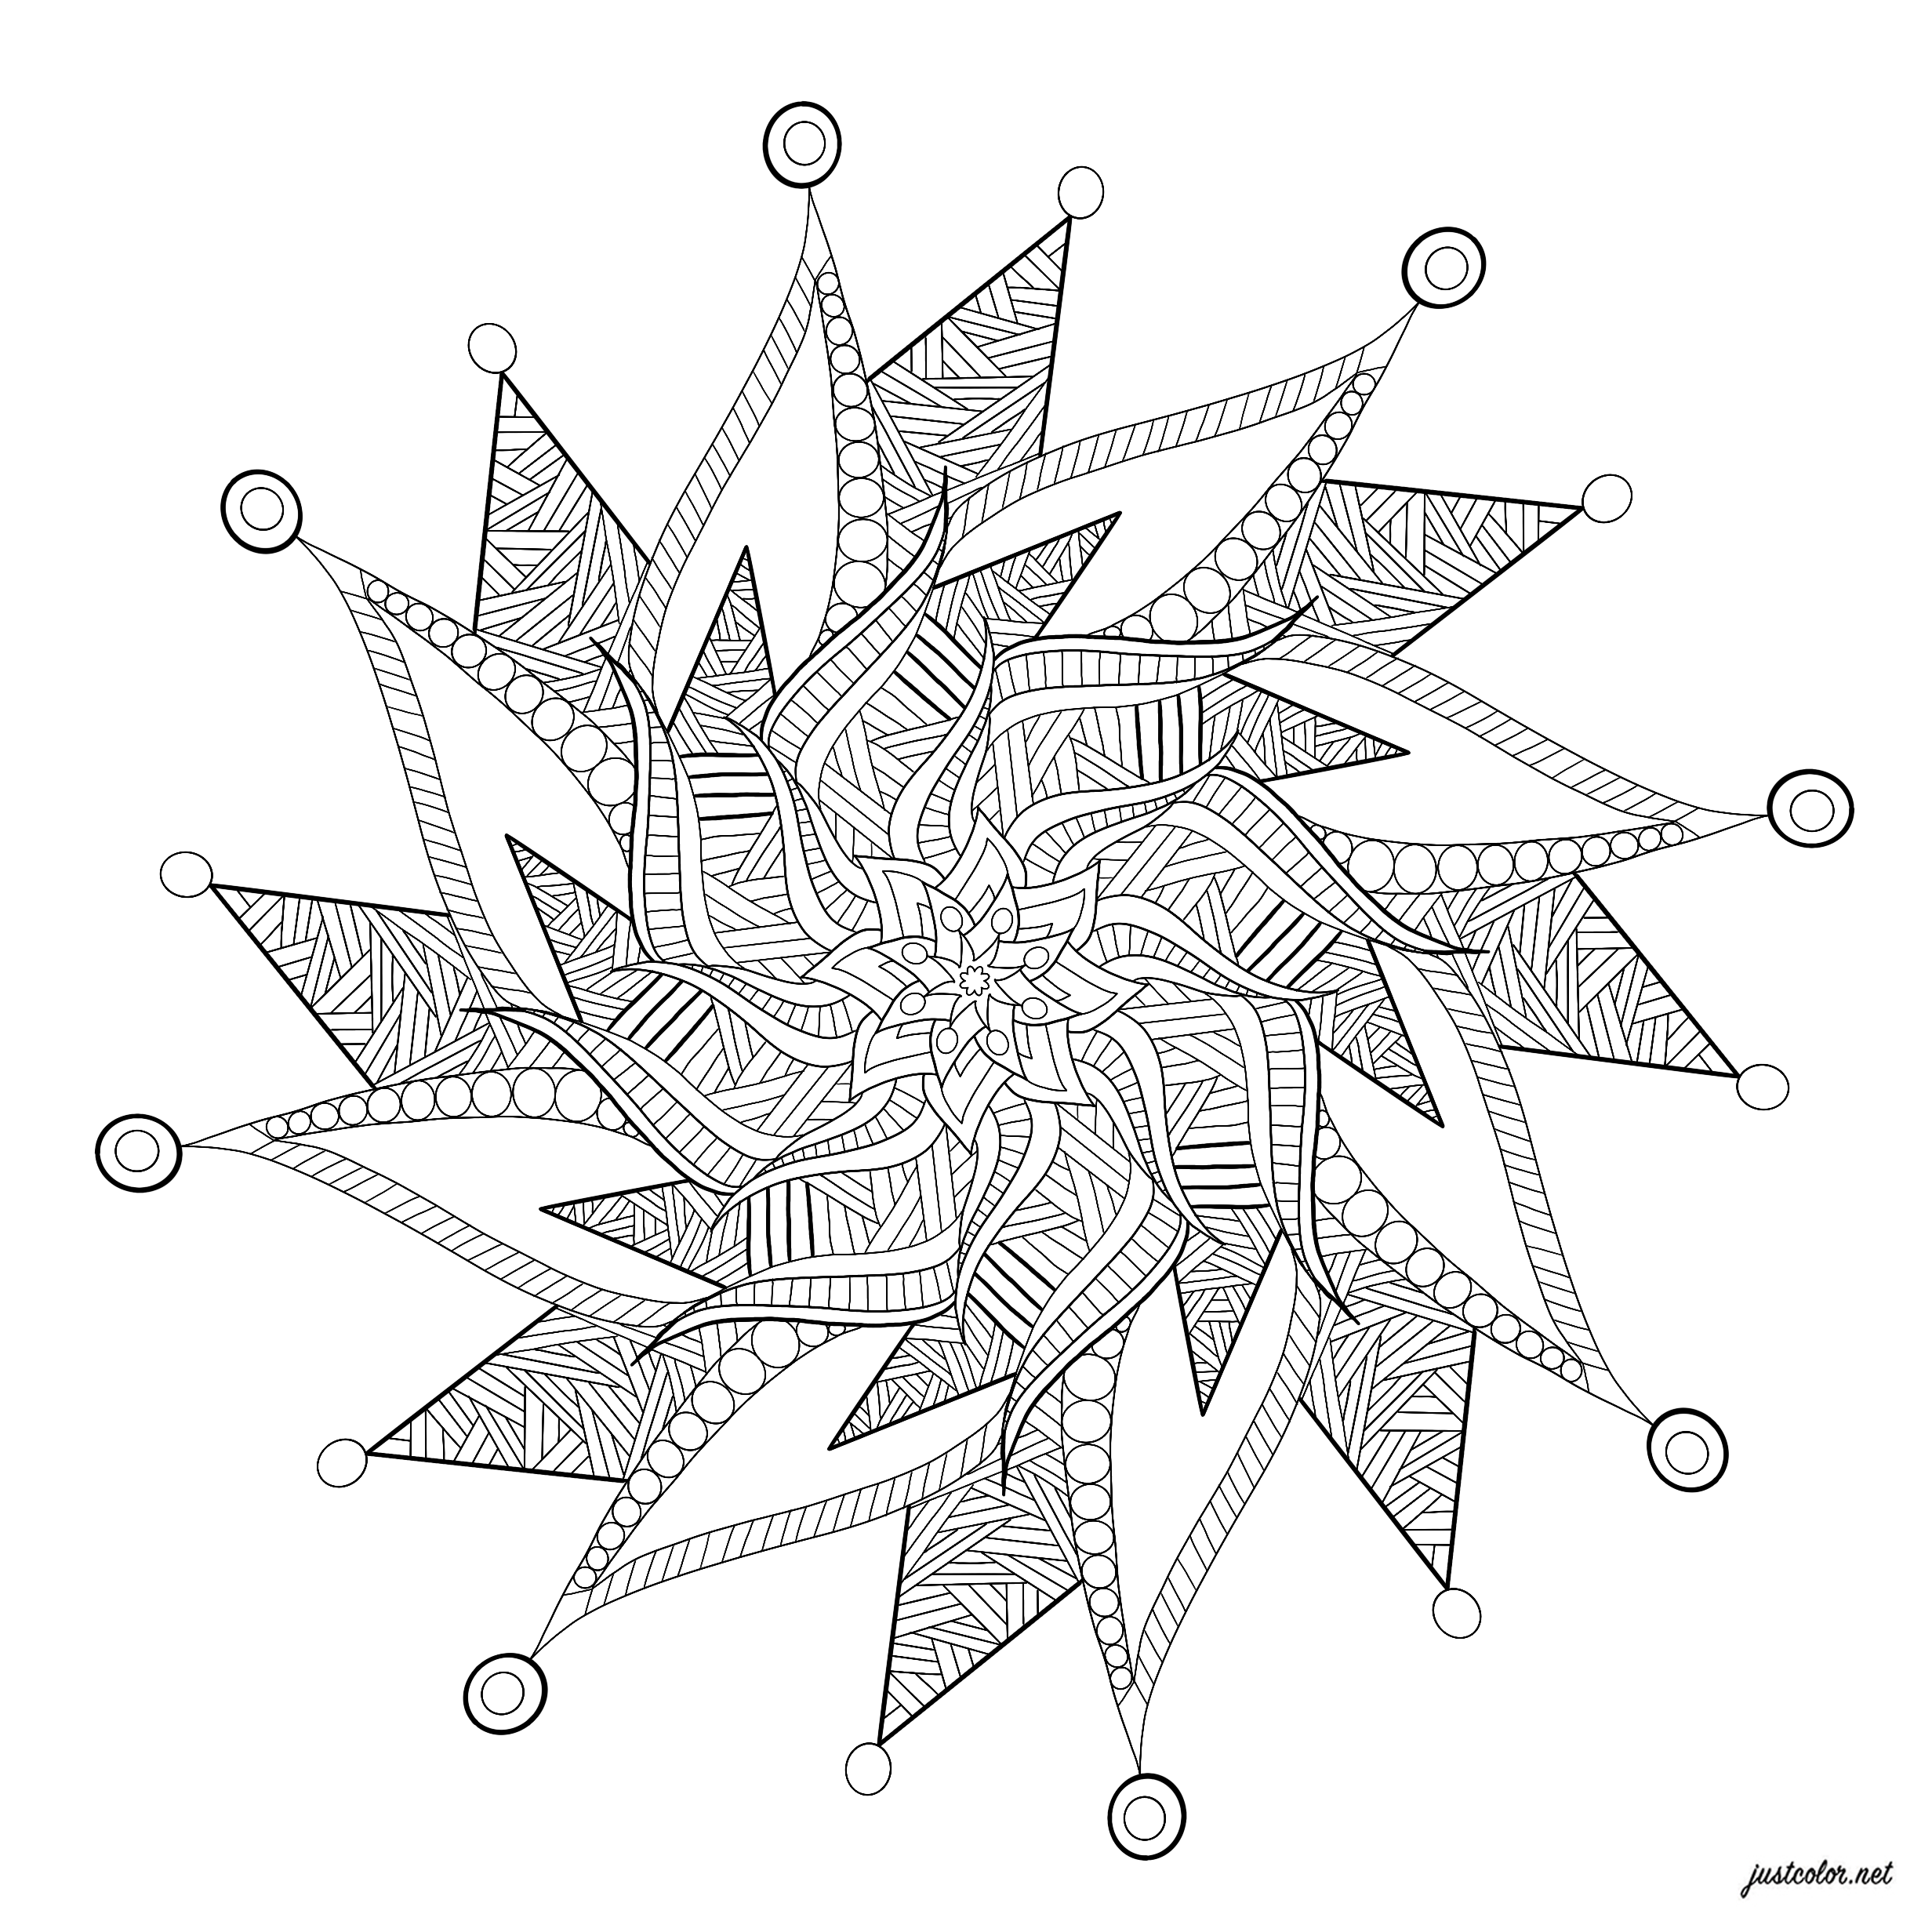 Calming sensory relaxing Mandala with soothing details